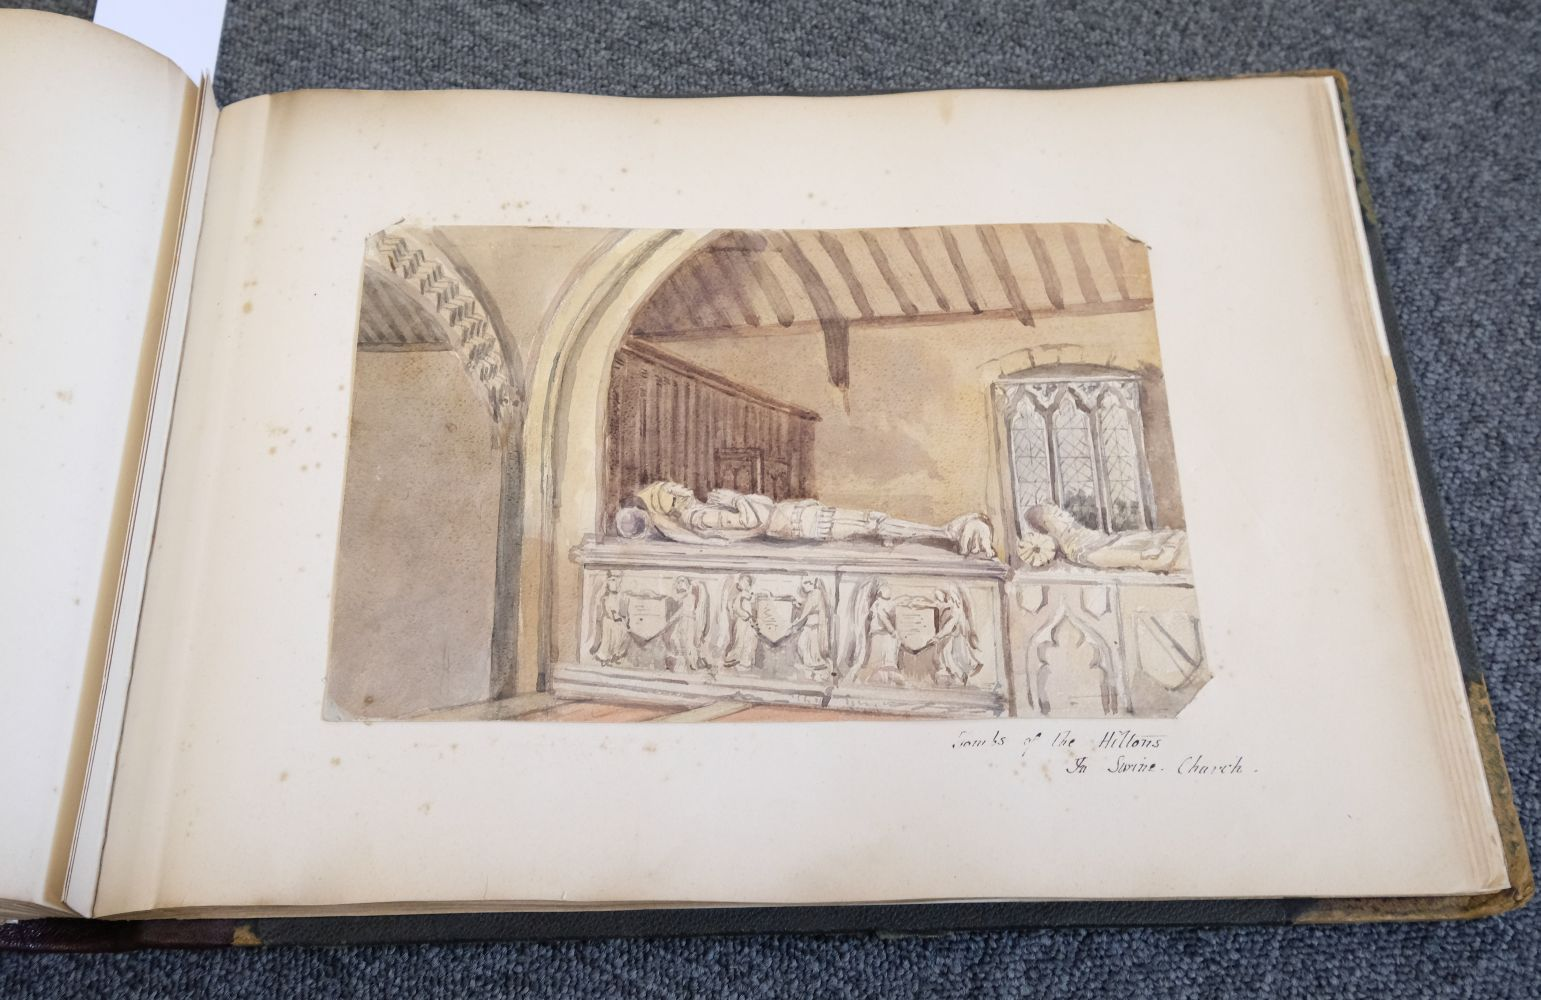 * Yorkshire. Hull and Neighbourhood, Sketches 1882-1883 - Image 15 of 15